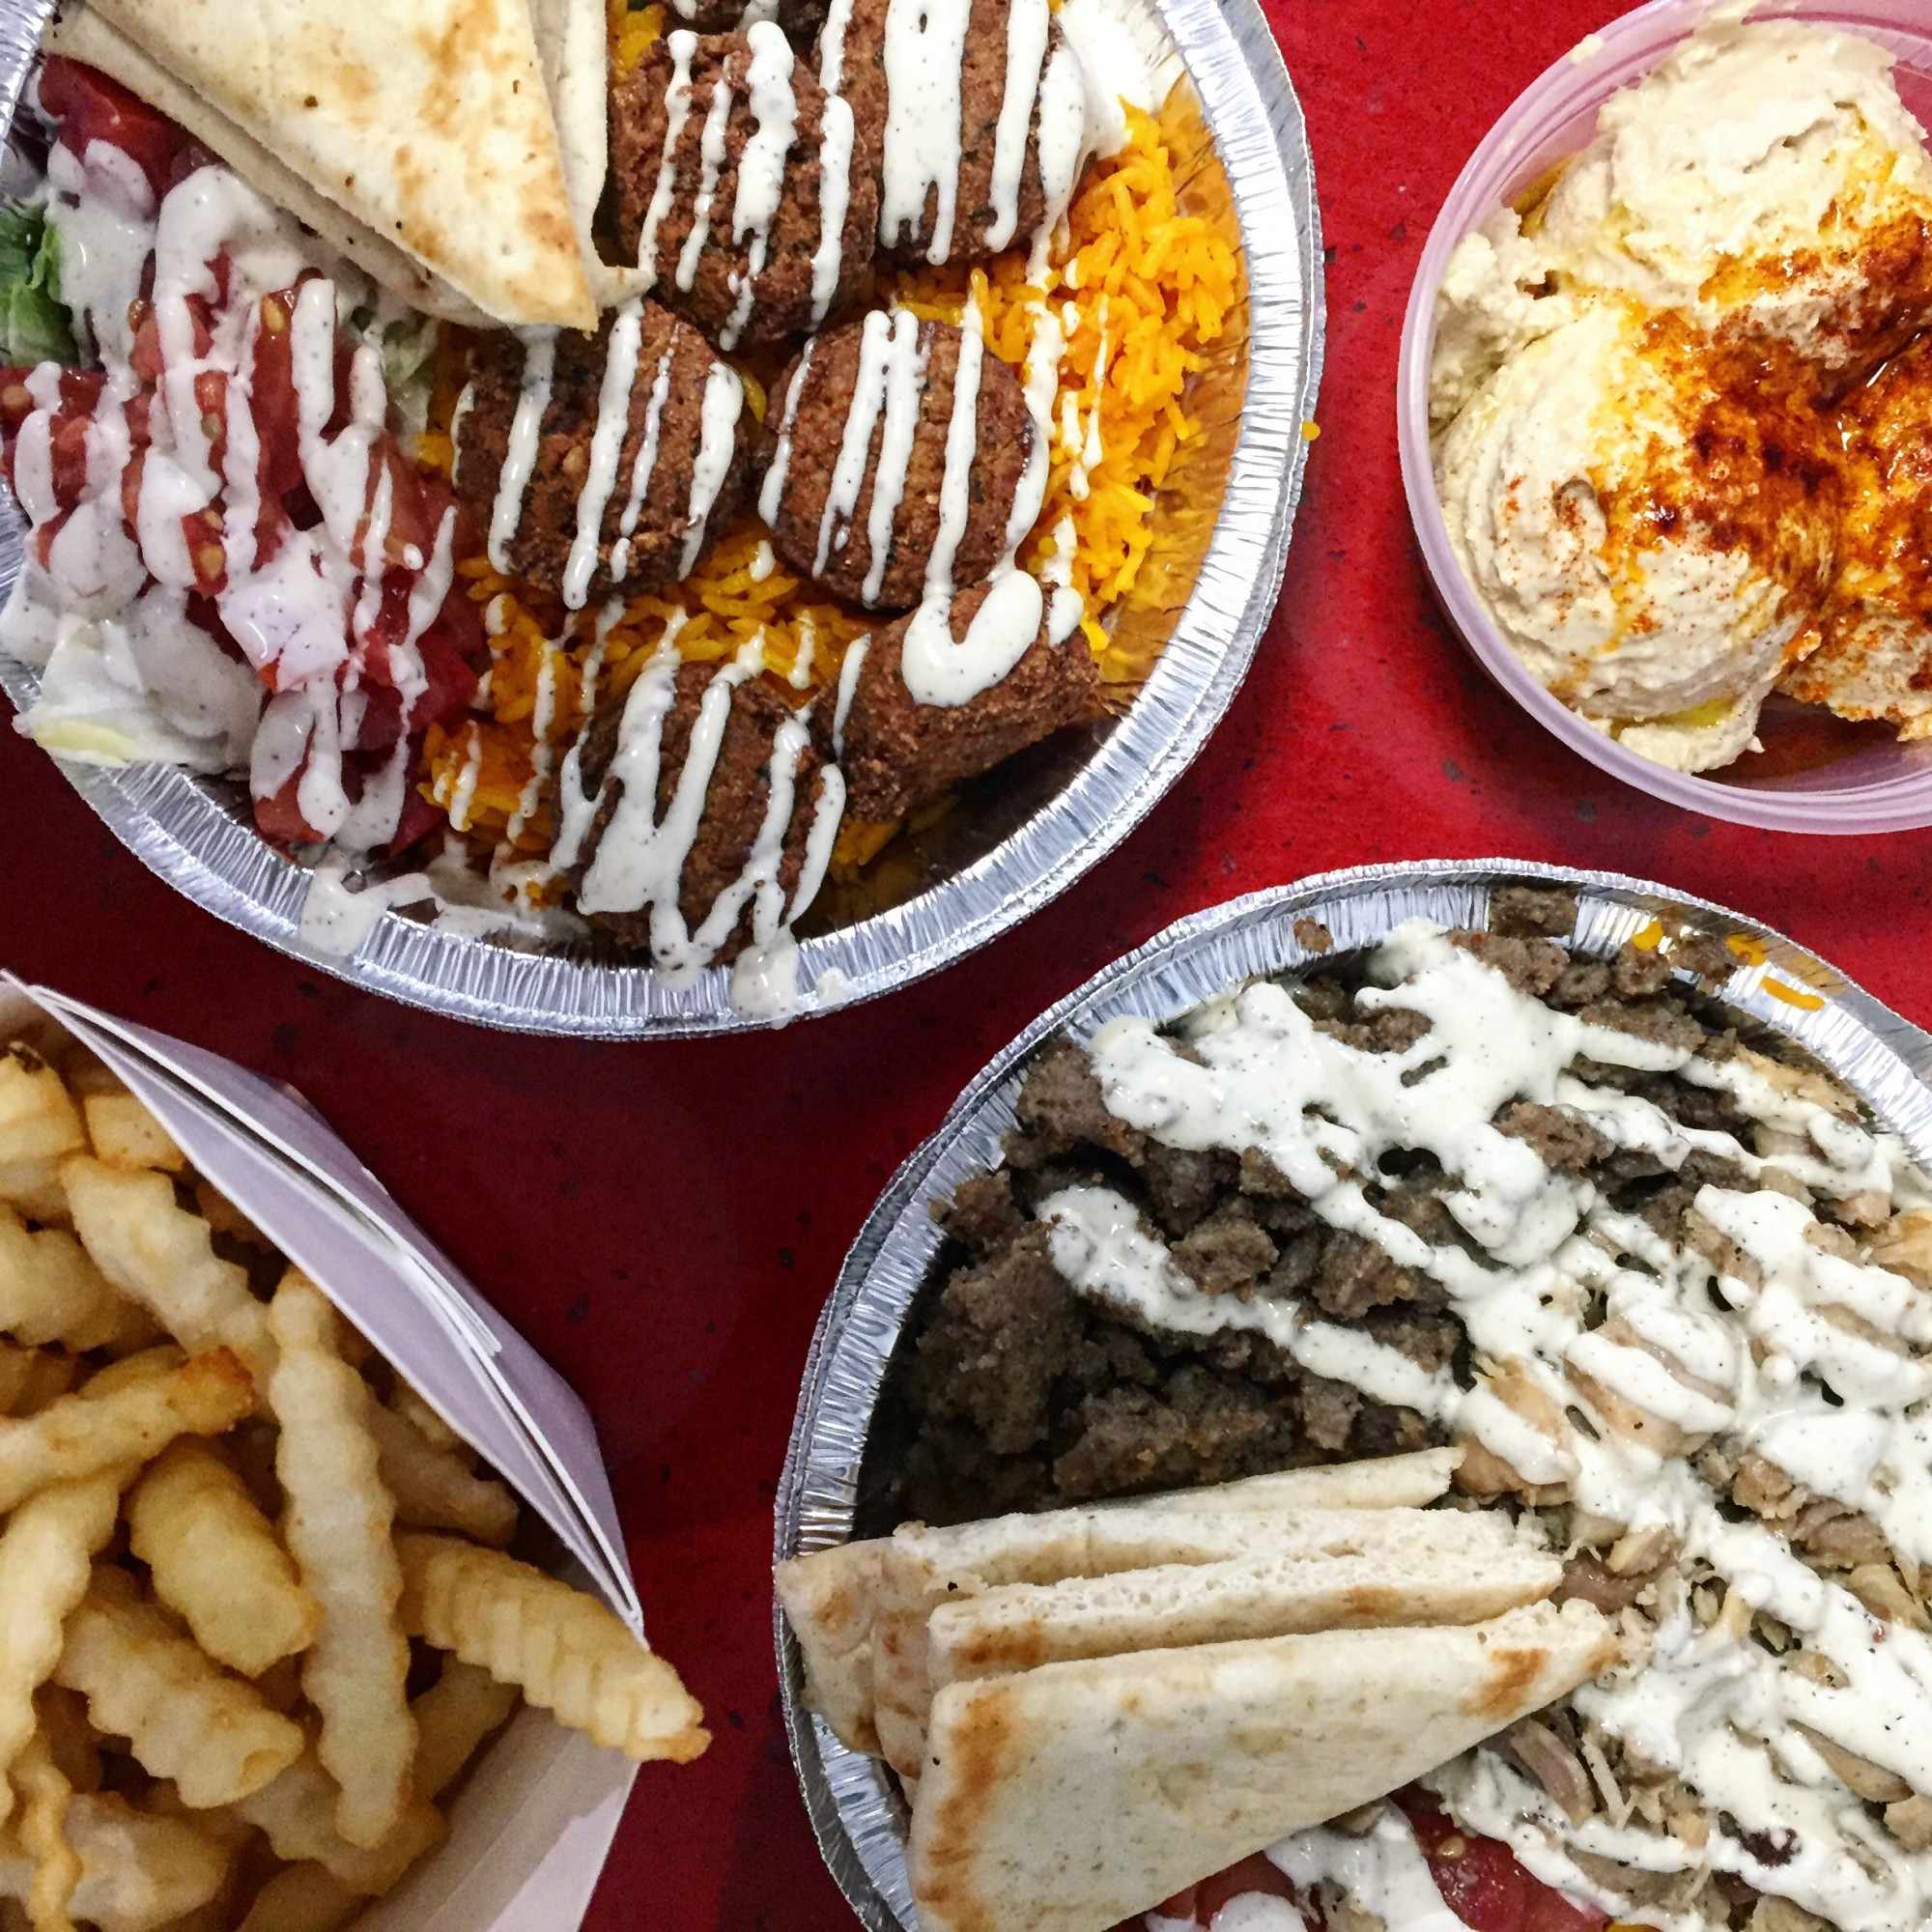 halal guys montreal opening 5